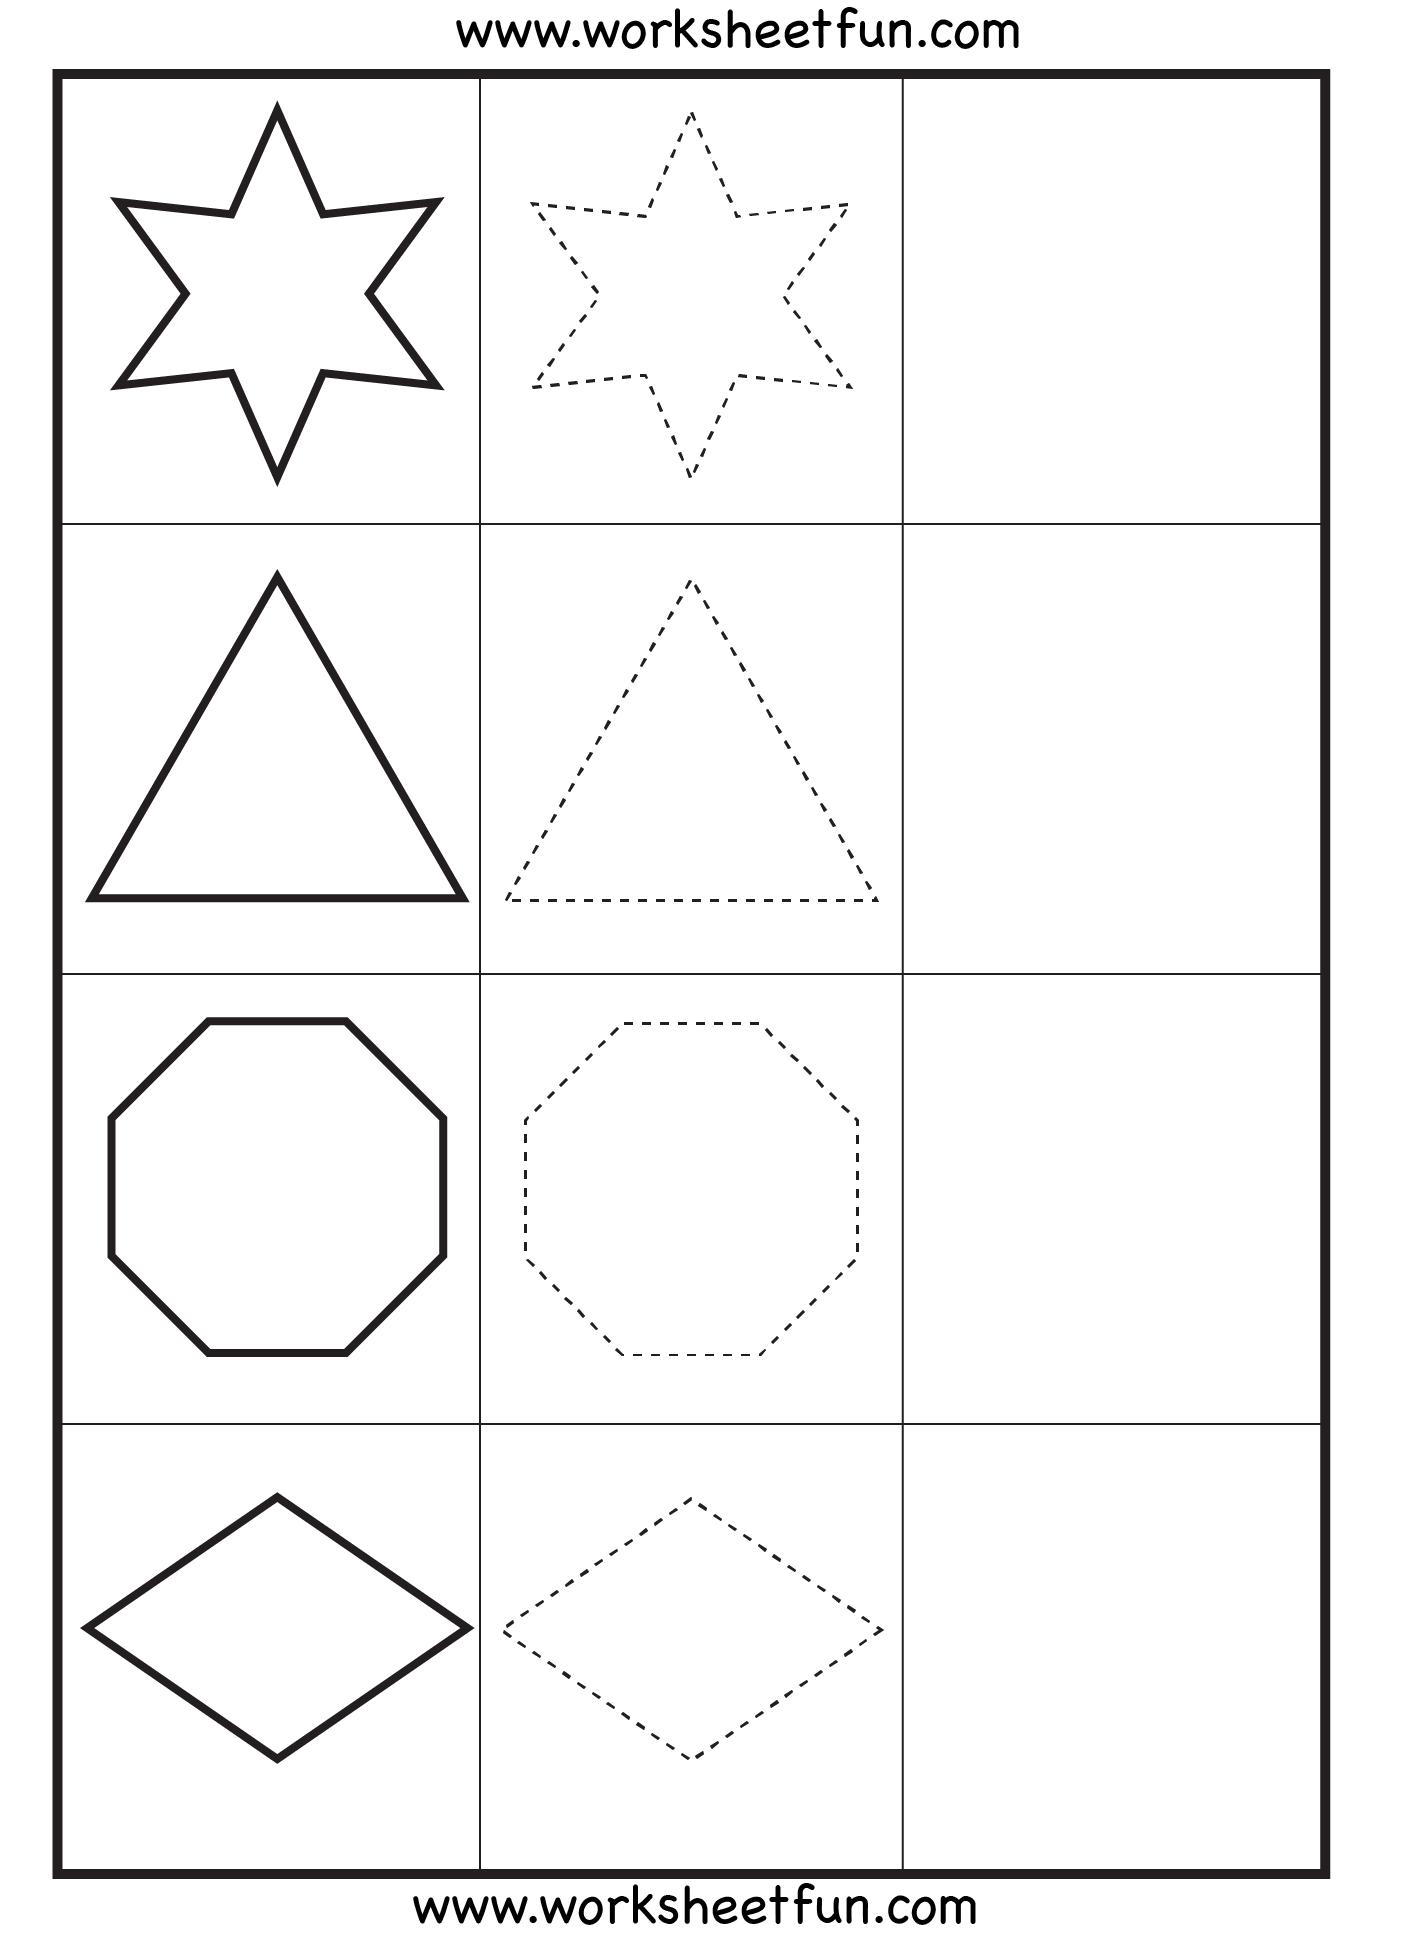 worksheet Free Printable Shapes Worksheets For Preschoolers pre k learning christmas colors worksheets google search shapes worksheetstracing worksheetsfree printable worksheetspreschool